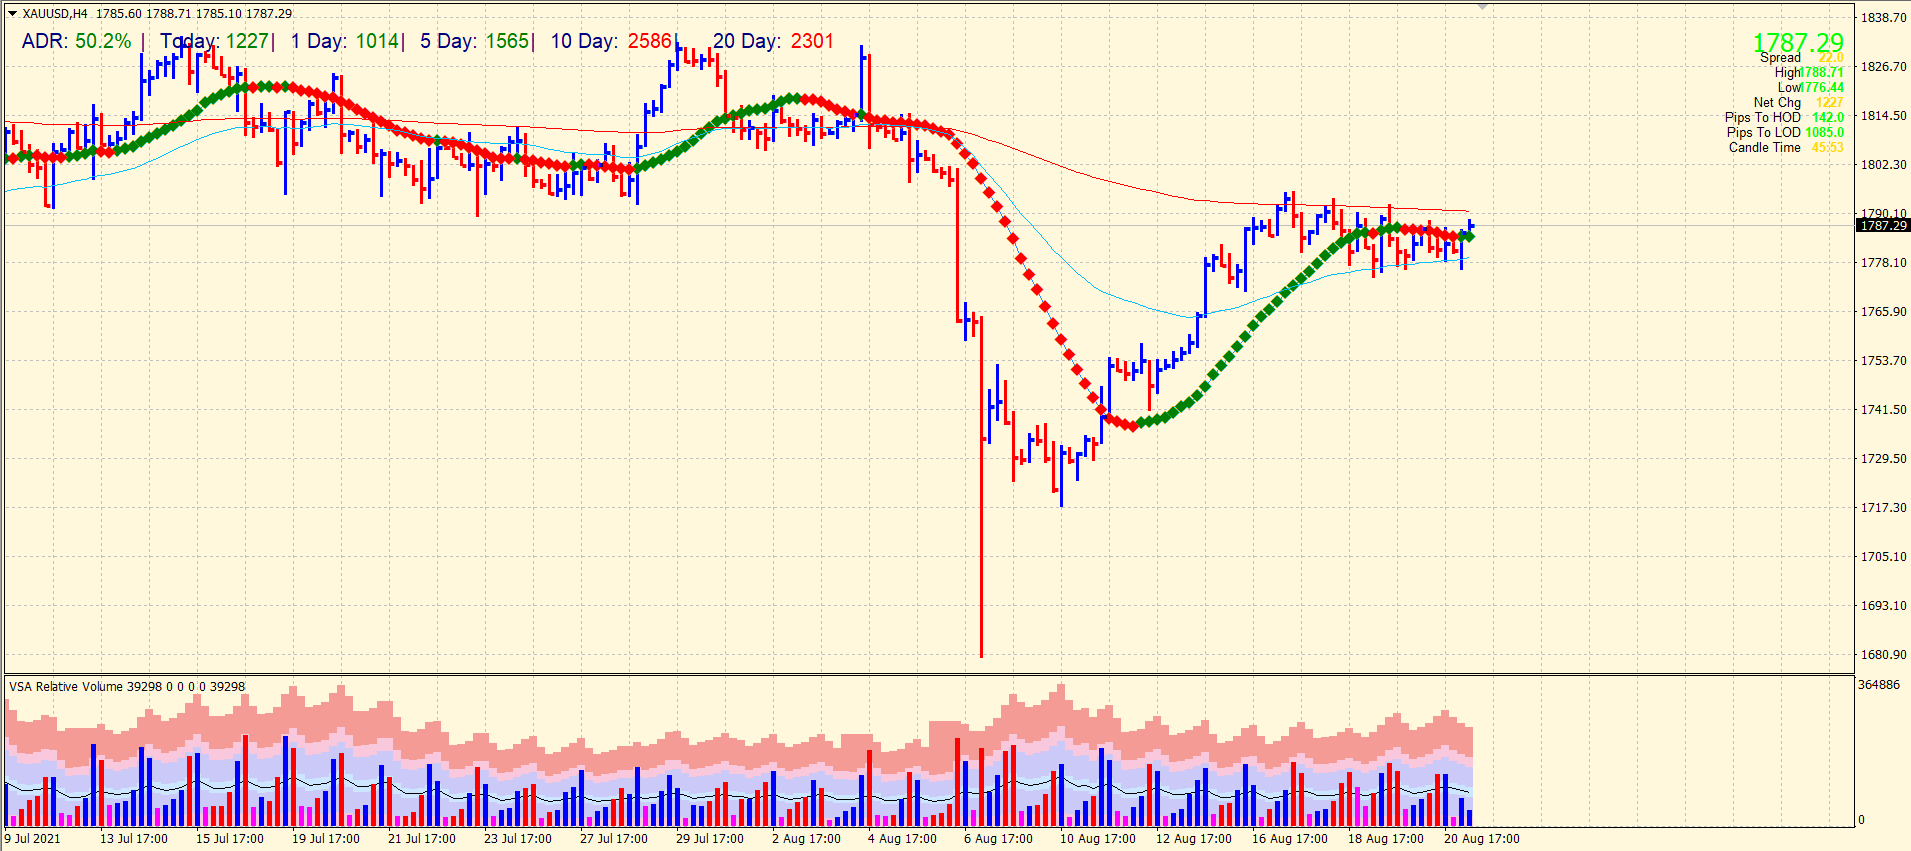 Gold price 4-hour chart outlook